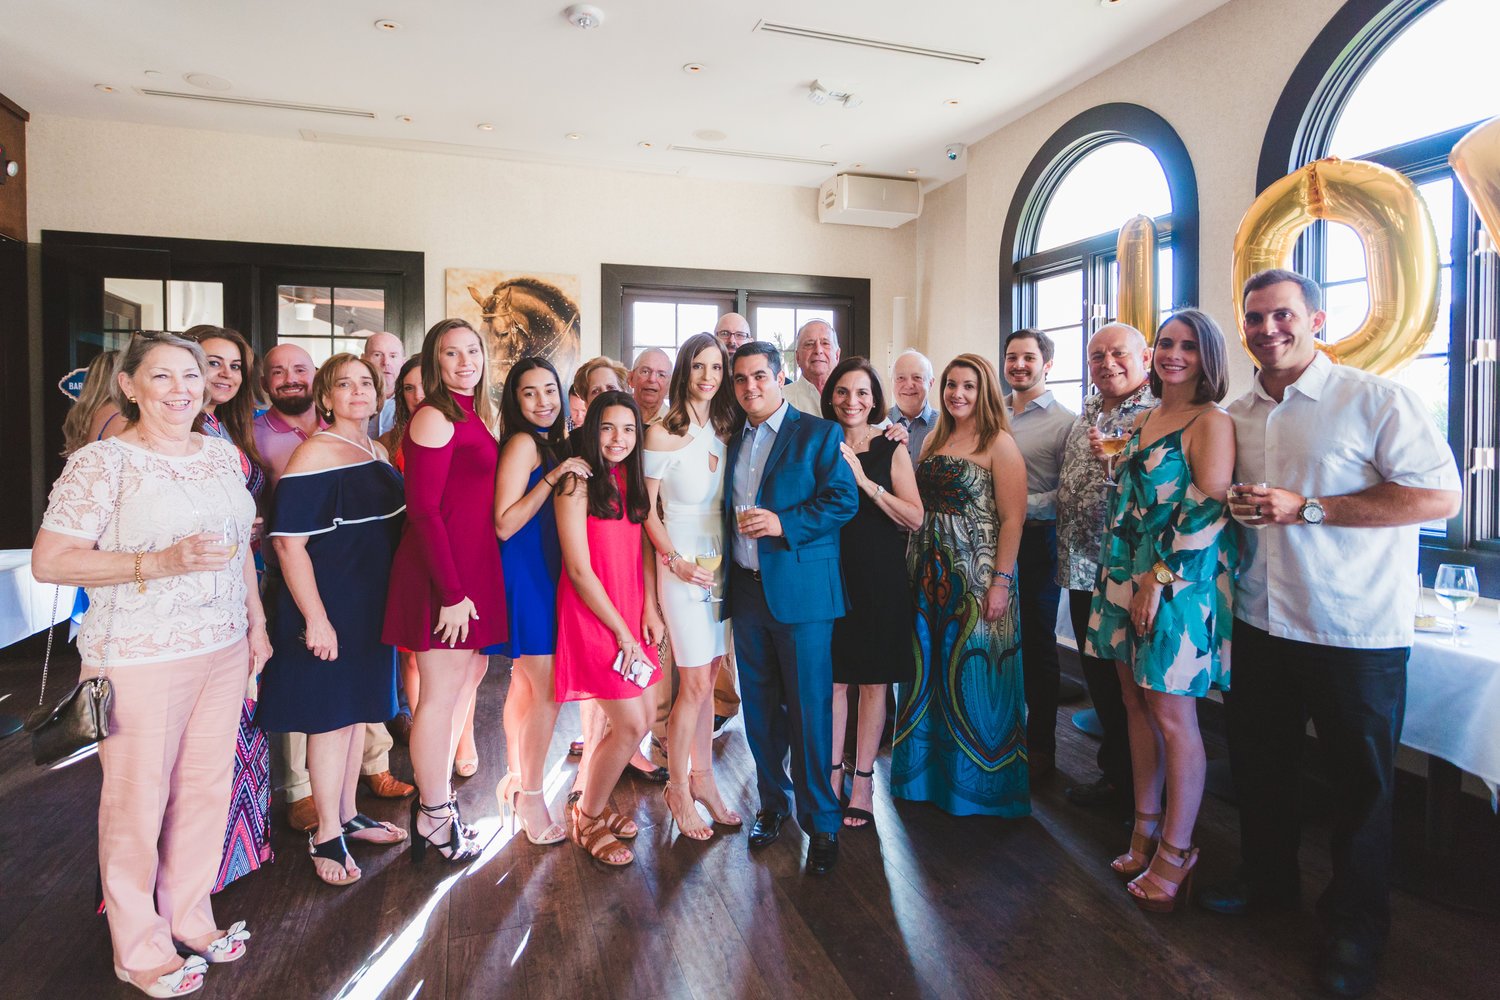 South-Florida-Events-Photographer-Engagement-Party-Photography-Coral-Gables-Bulla-Restaurant